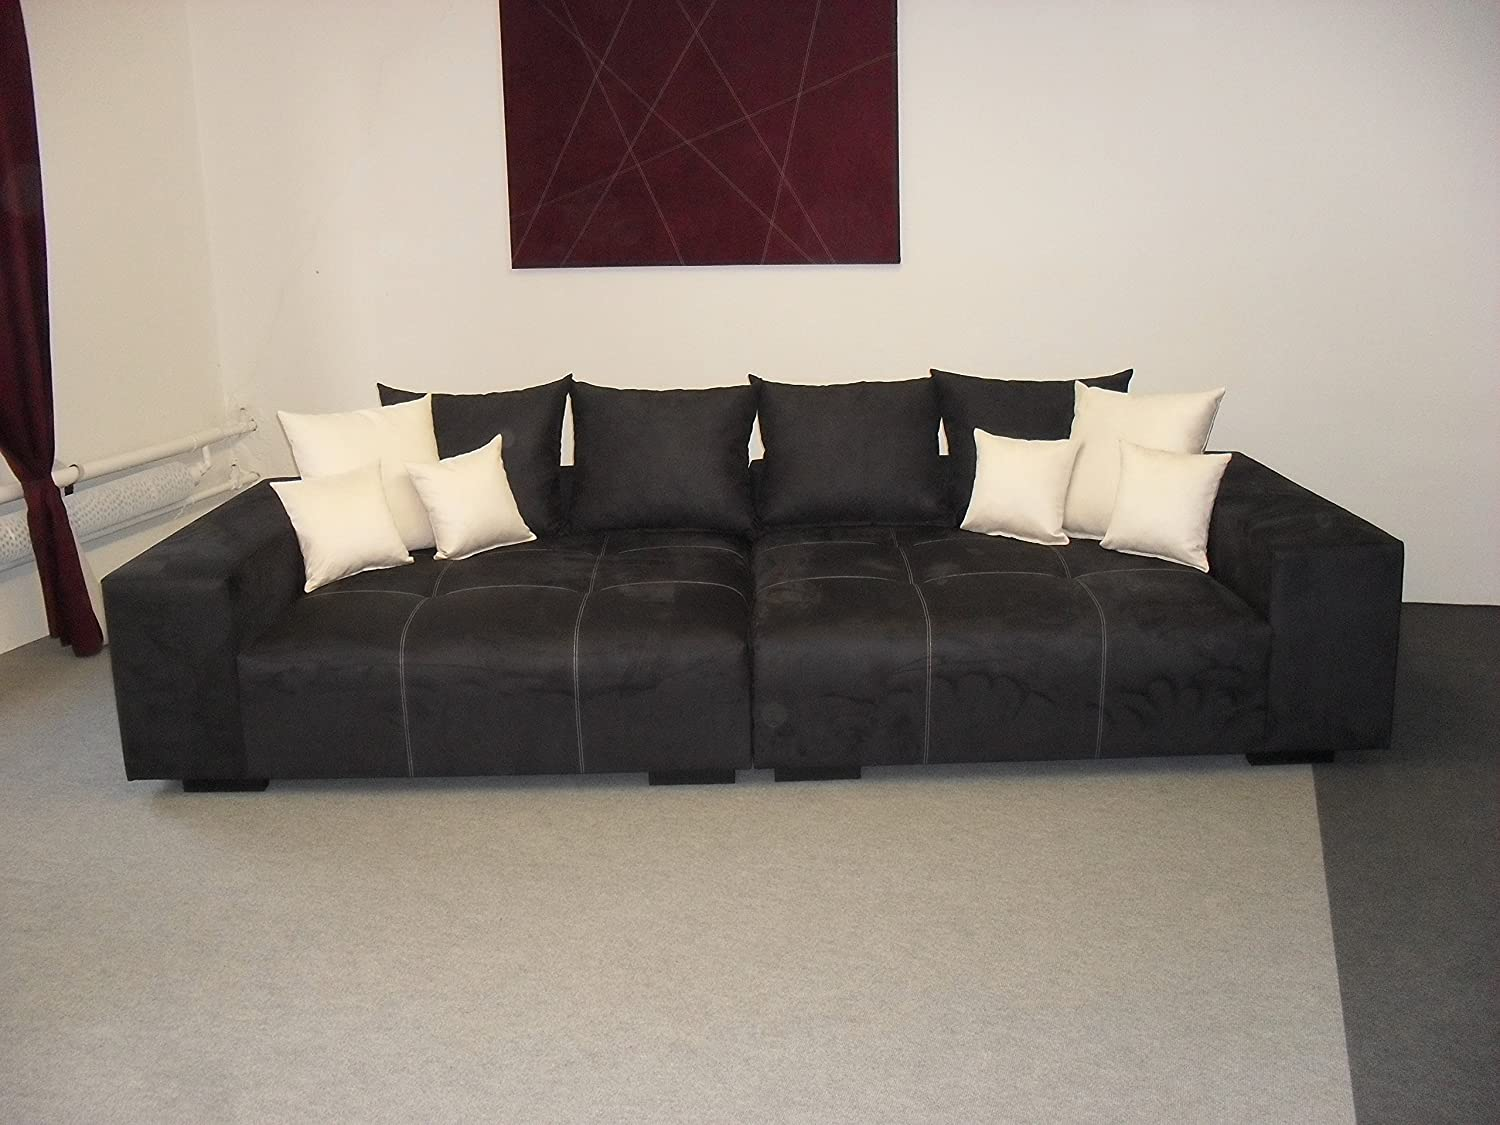 Big Sofa – Made in Germany – Bezug Noble Lux - Freie Farbwahl ohne ...